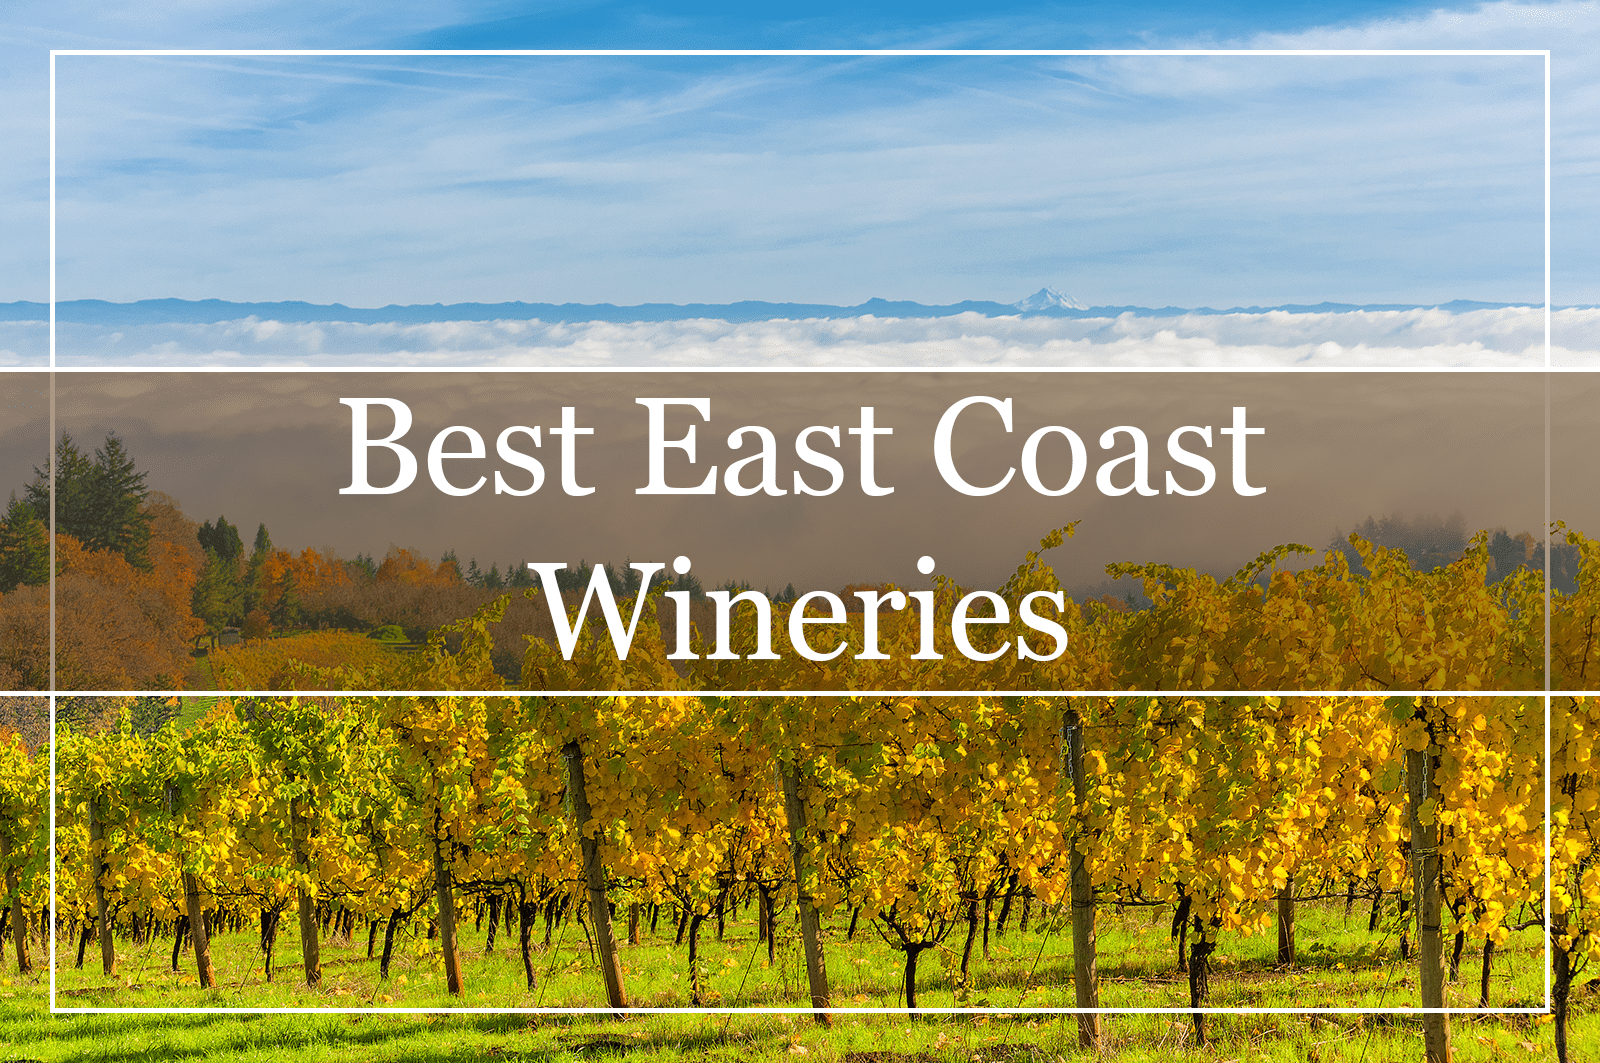 10 Best East Coast Wineries – According to Us